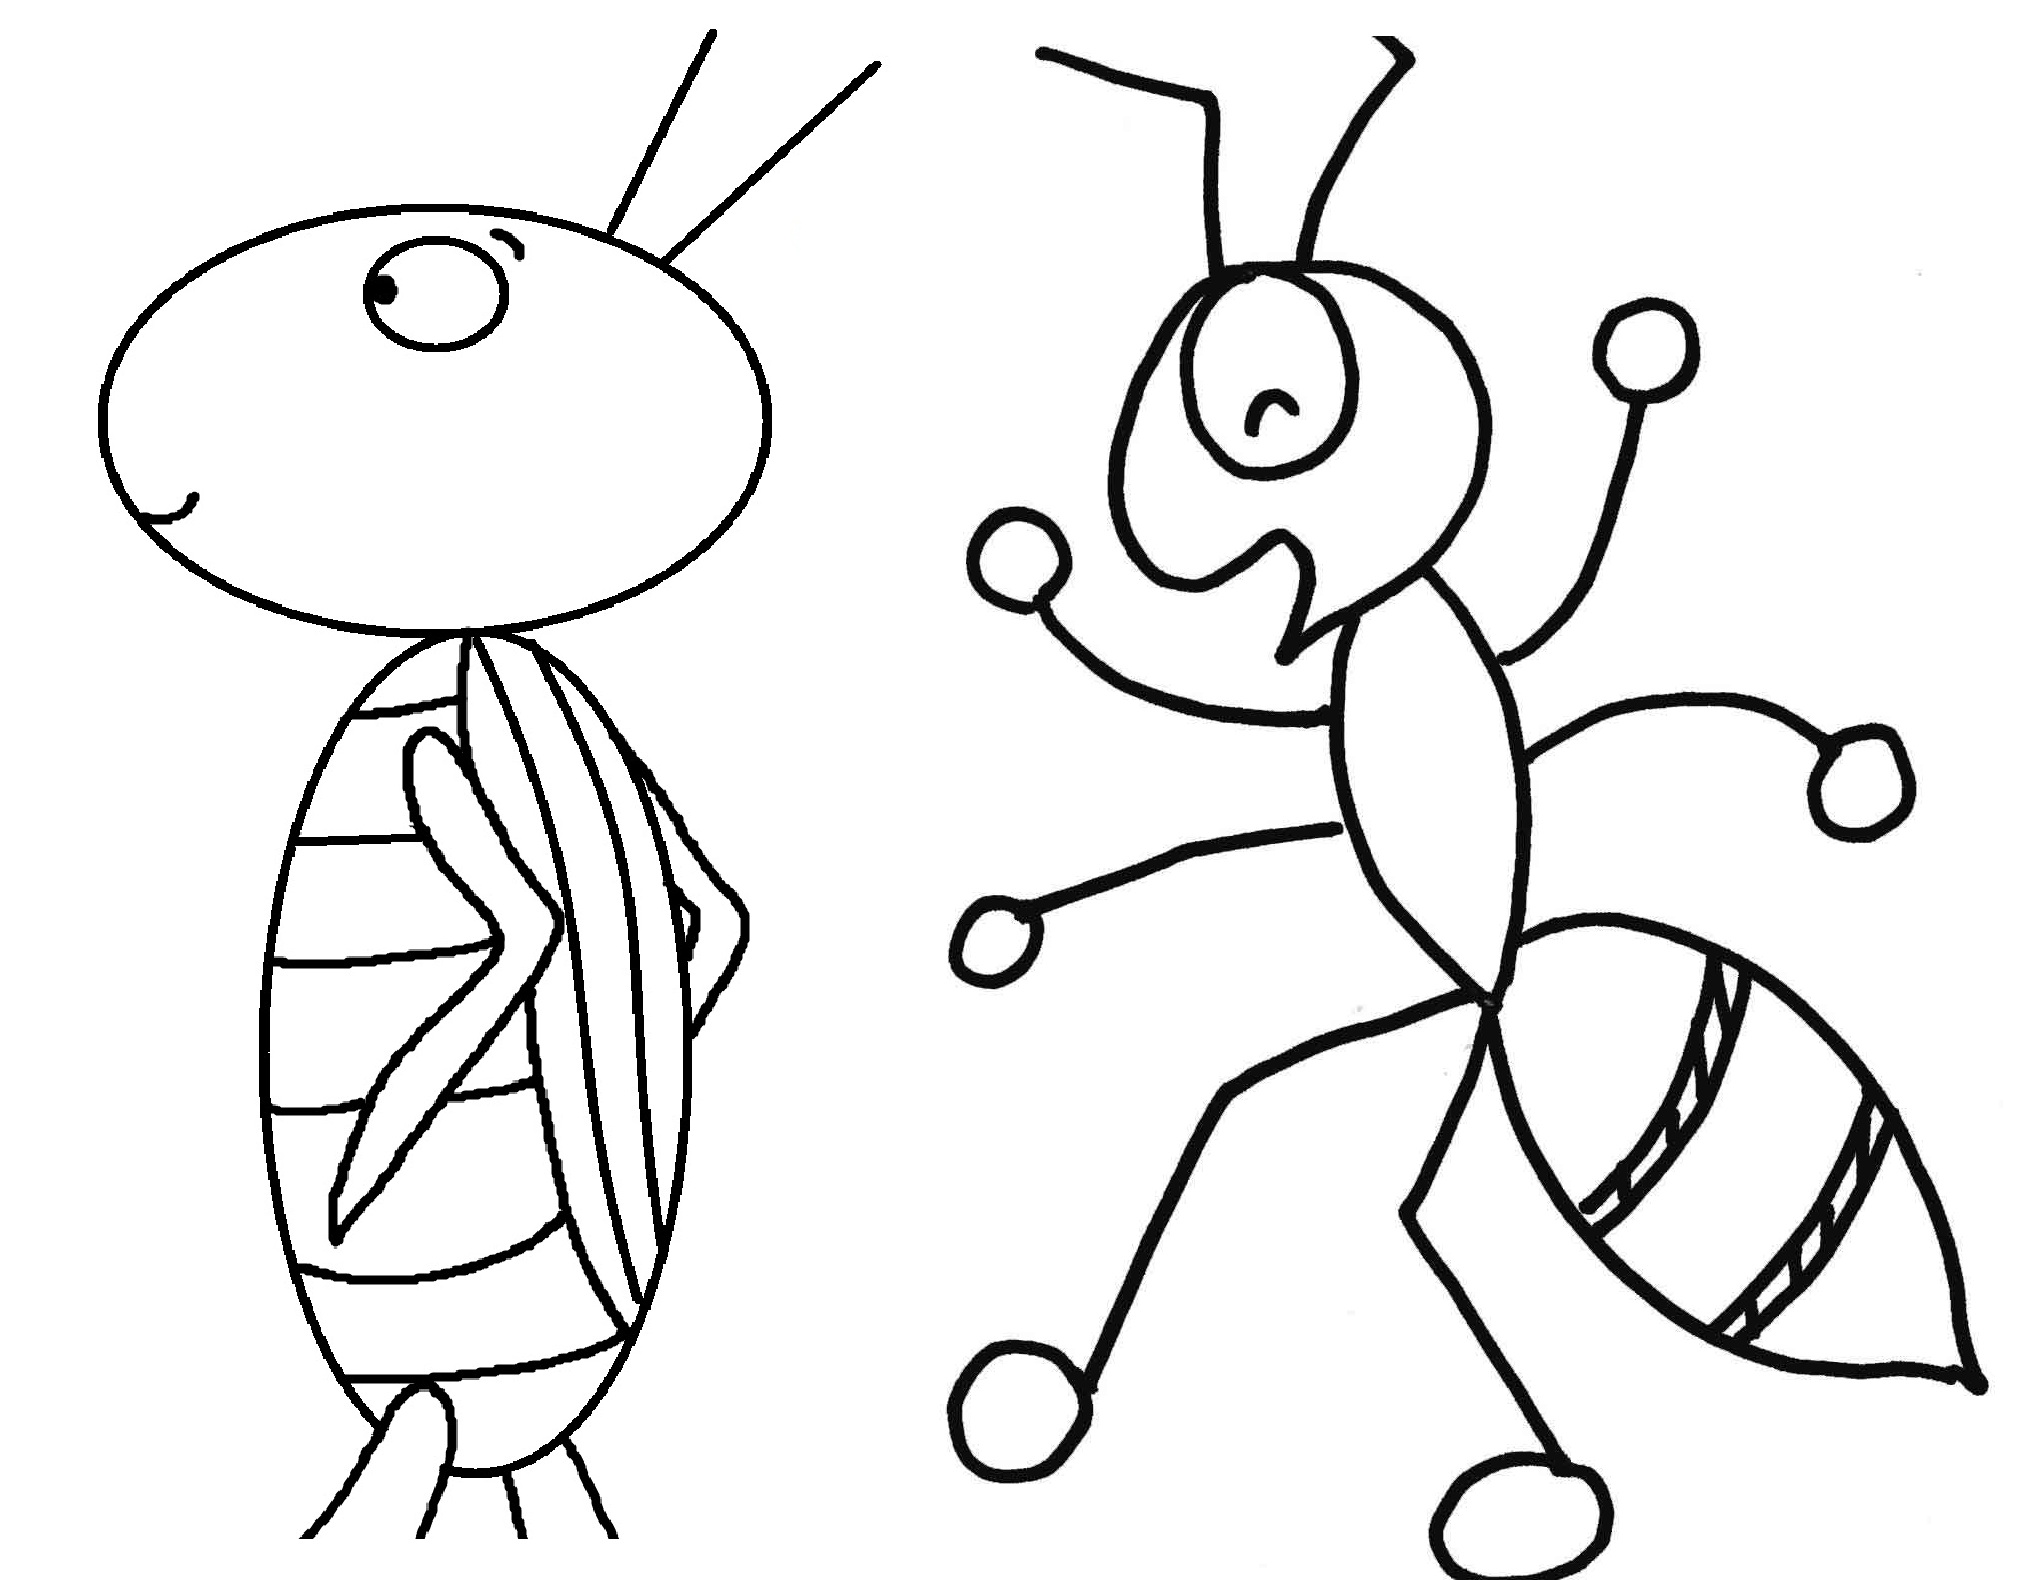 Grasshopper drawing outline at. Ant clipart colouring page